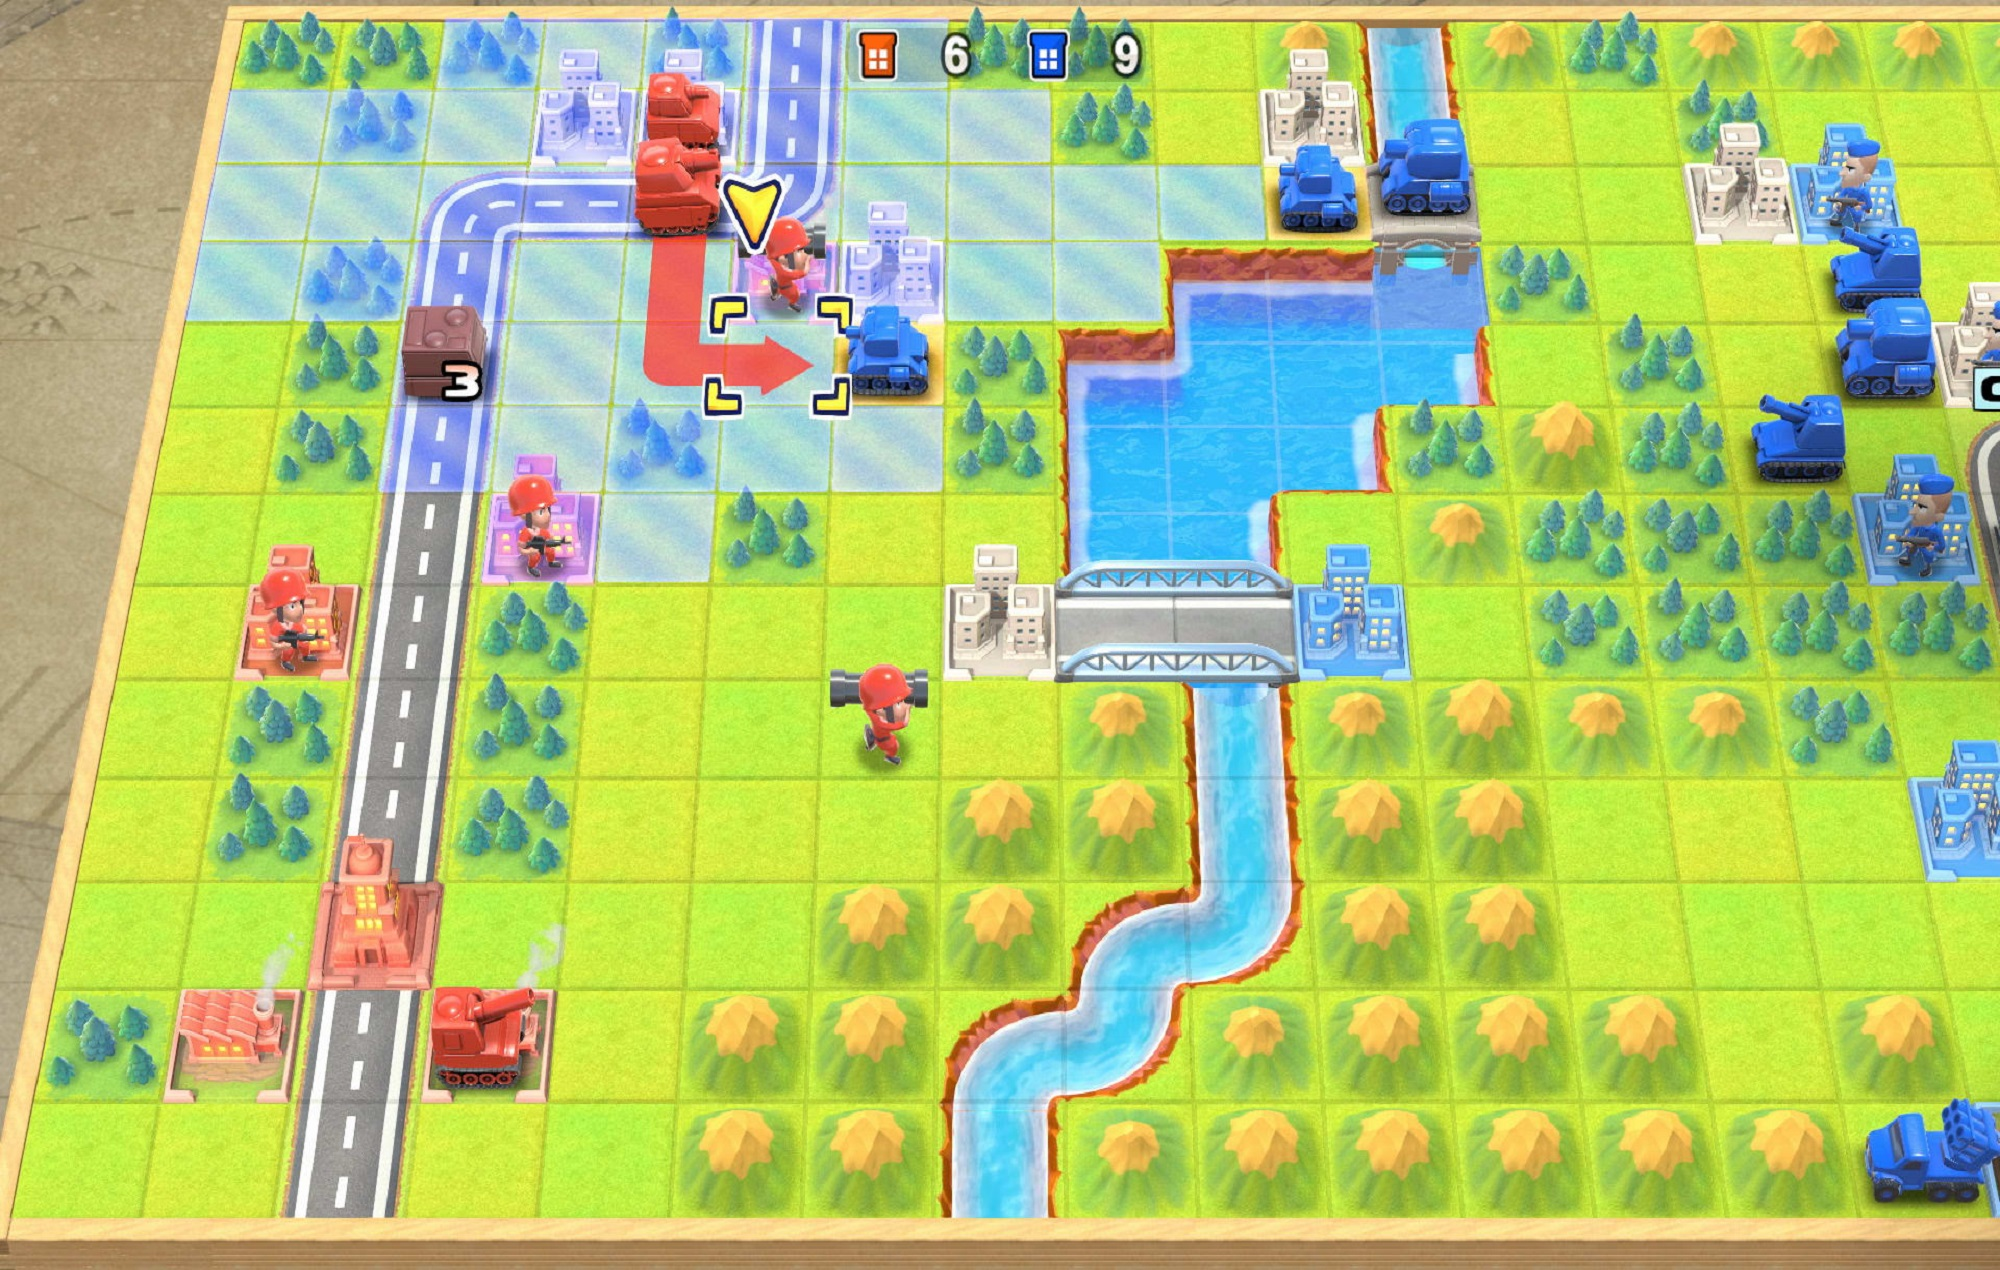 'Advance Wars' makes a glorious return after 13 years in remake collection